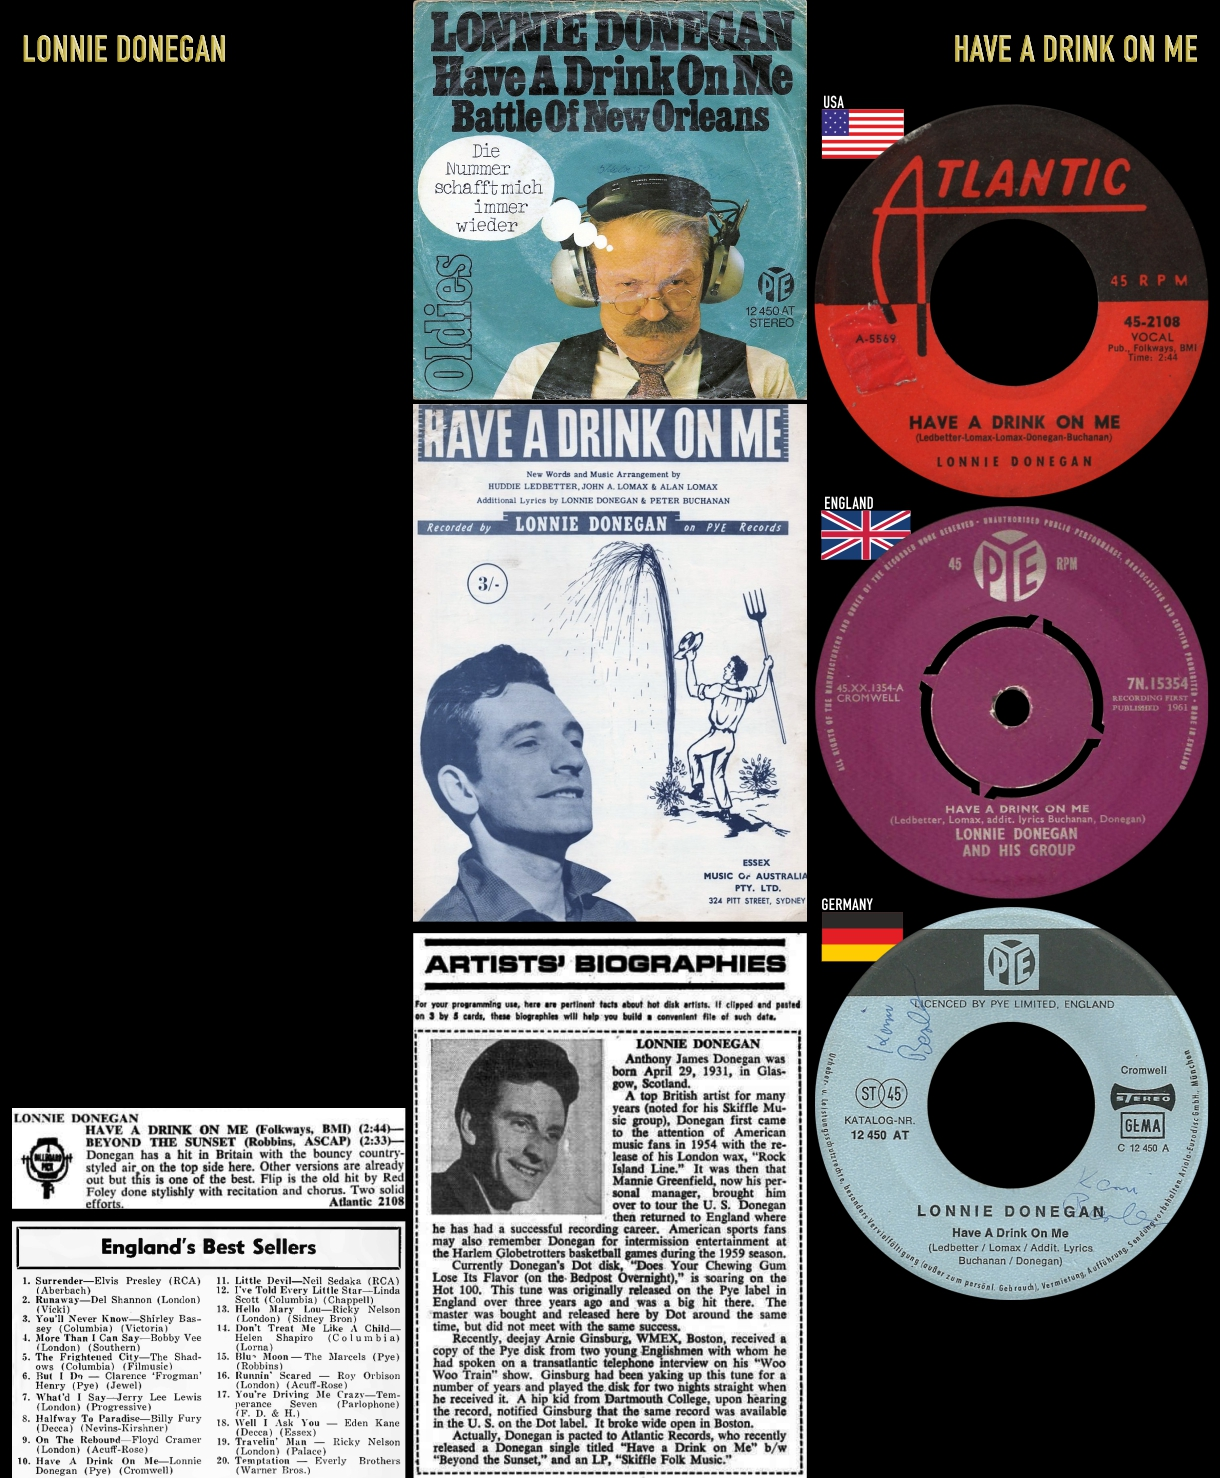 610513_Lonnie Donegan_Have A Drink On Me